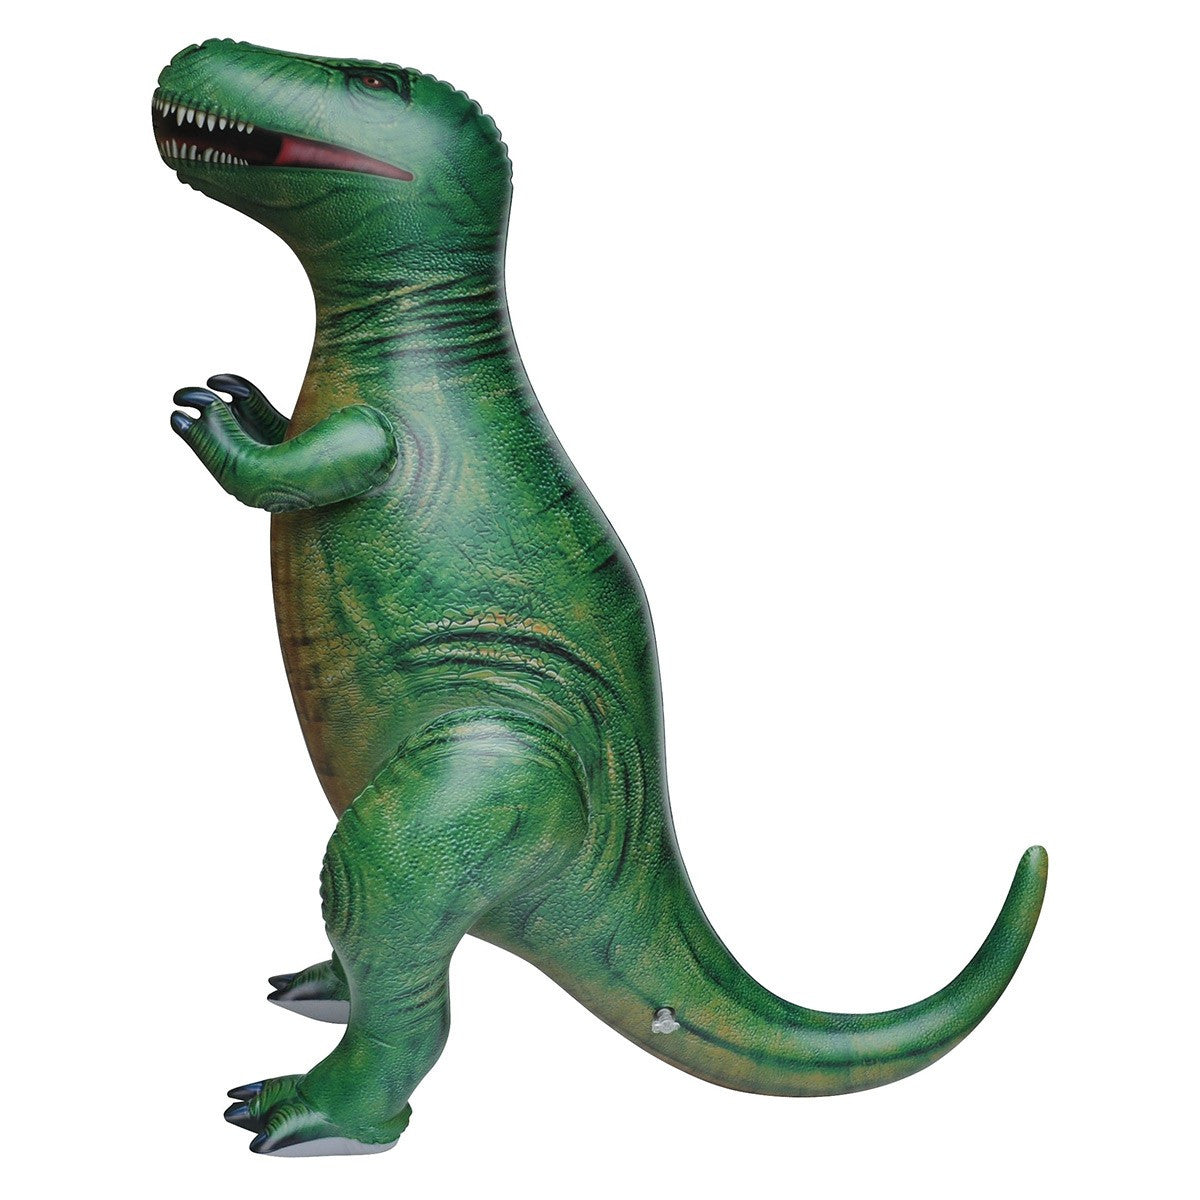 Inflatable T-Rex Dinosaur Model - 3 Foot Tyrannosaurus Rex Dino Figure - Off The Wall Toys and Gifts